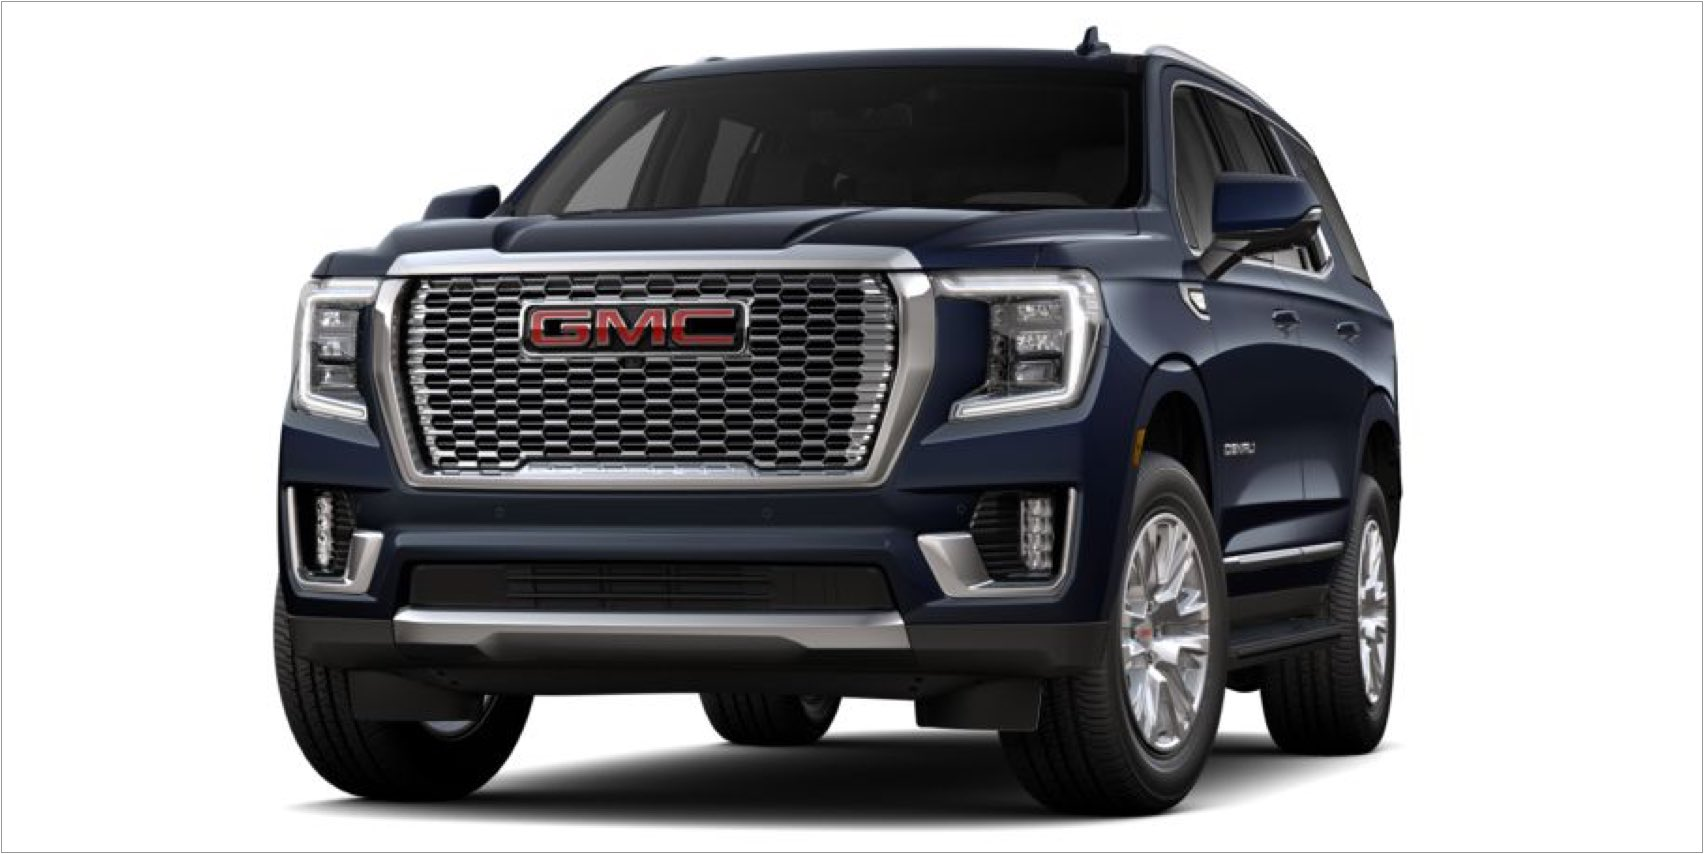 2021 GMC Yukon in Midnight Blue Metallic